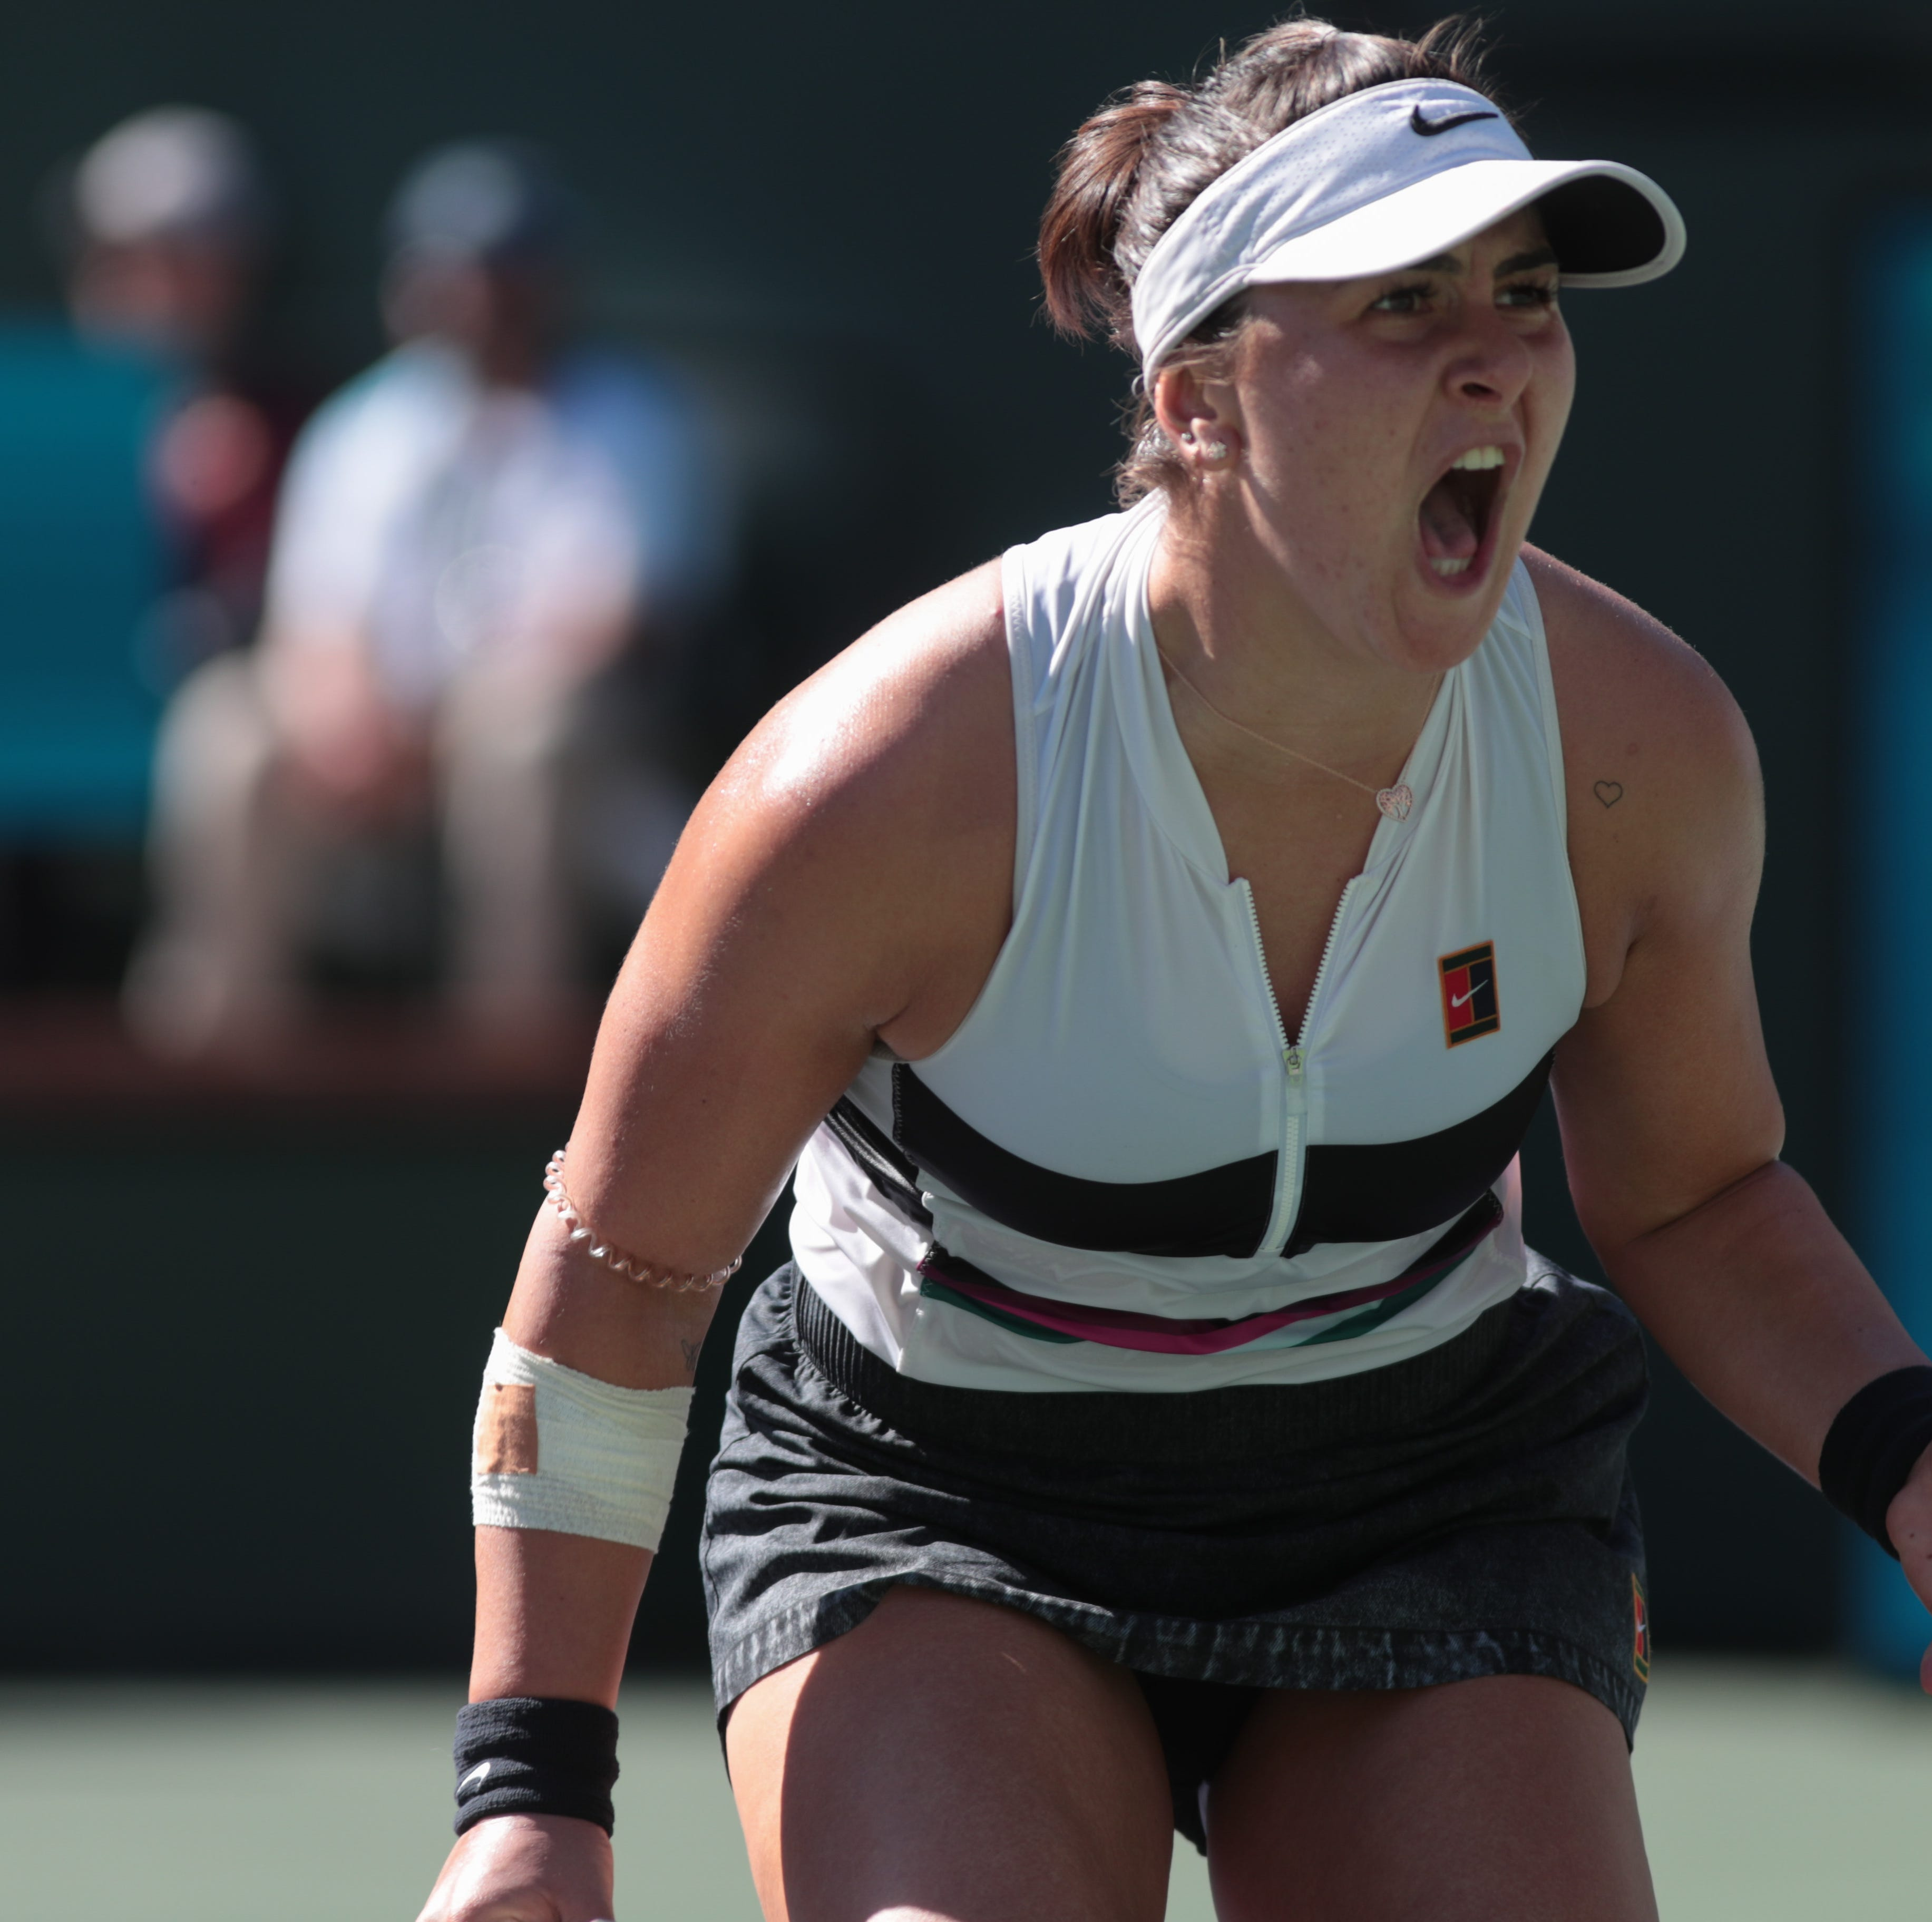 BNP Paribas Open moments: Bianca's rise, Serena's illness, Rafa's knee, bugs, raps and 25 more